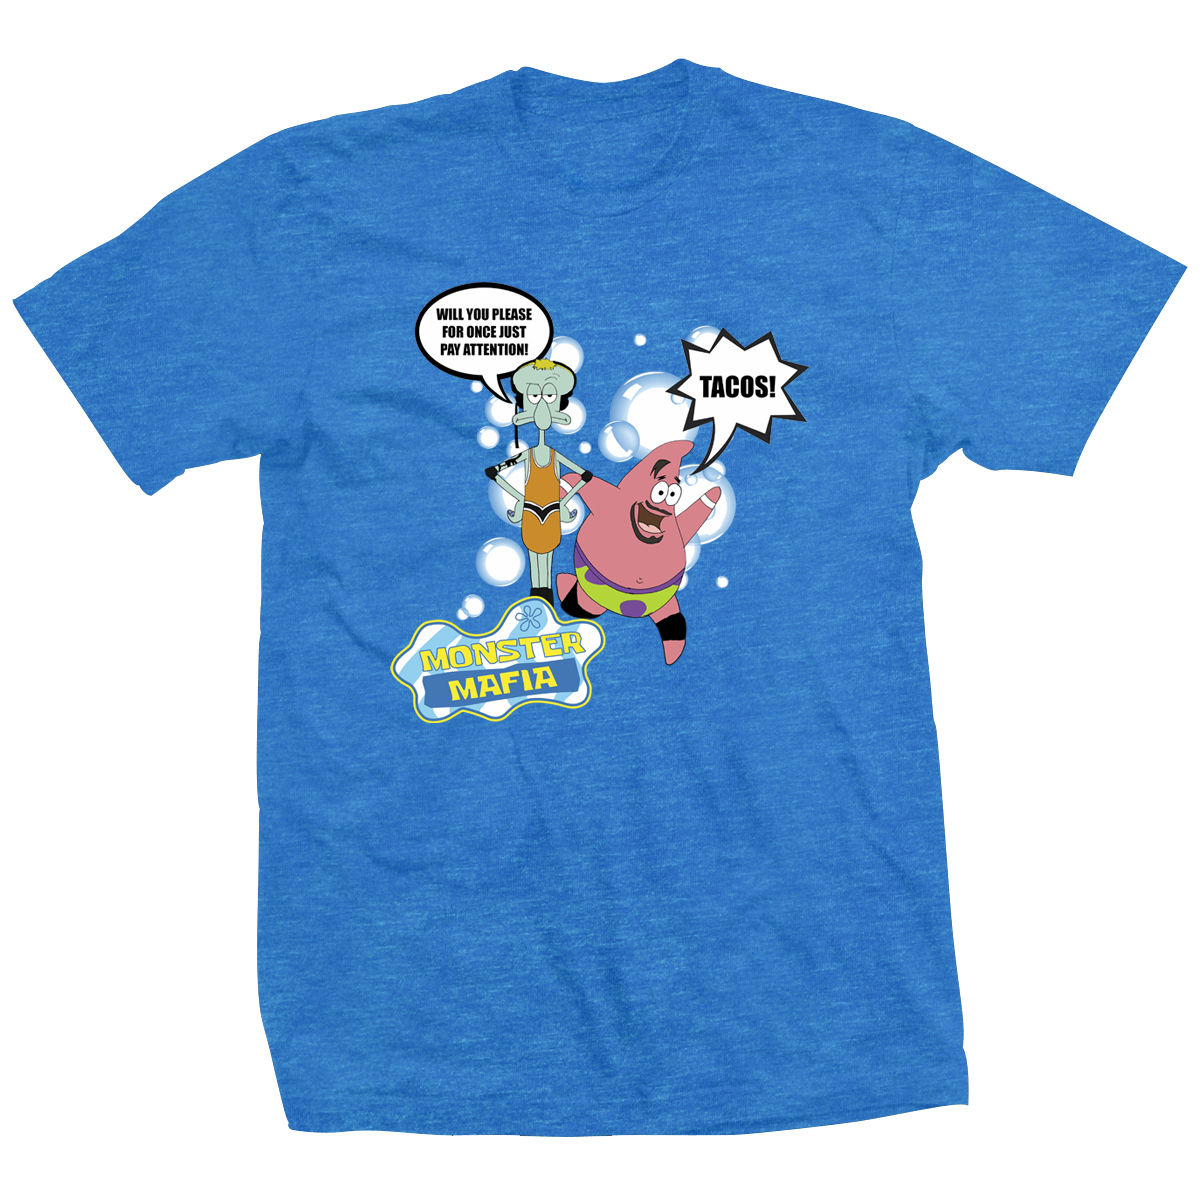 Ethan Page Under Sea Mafia T-shirt